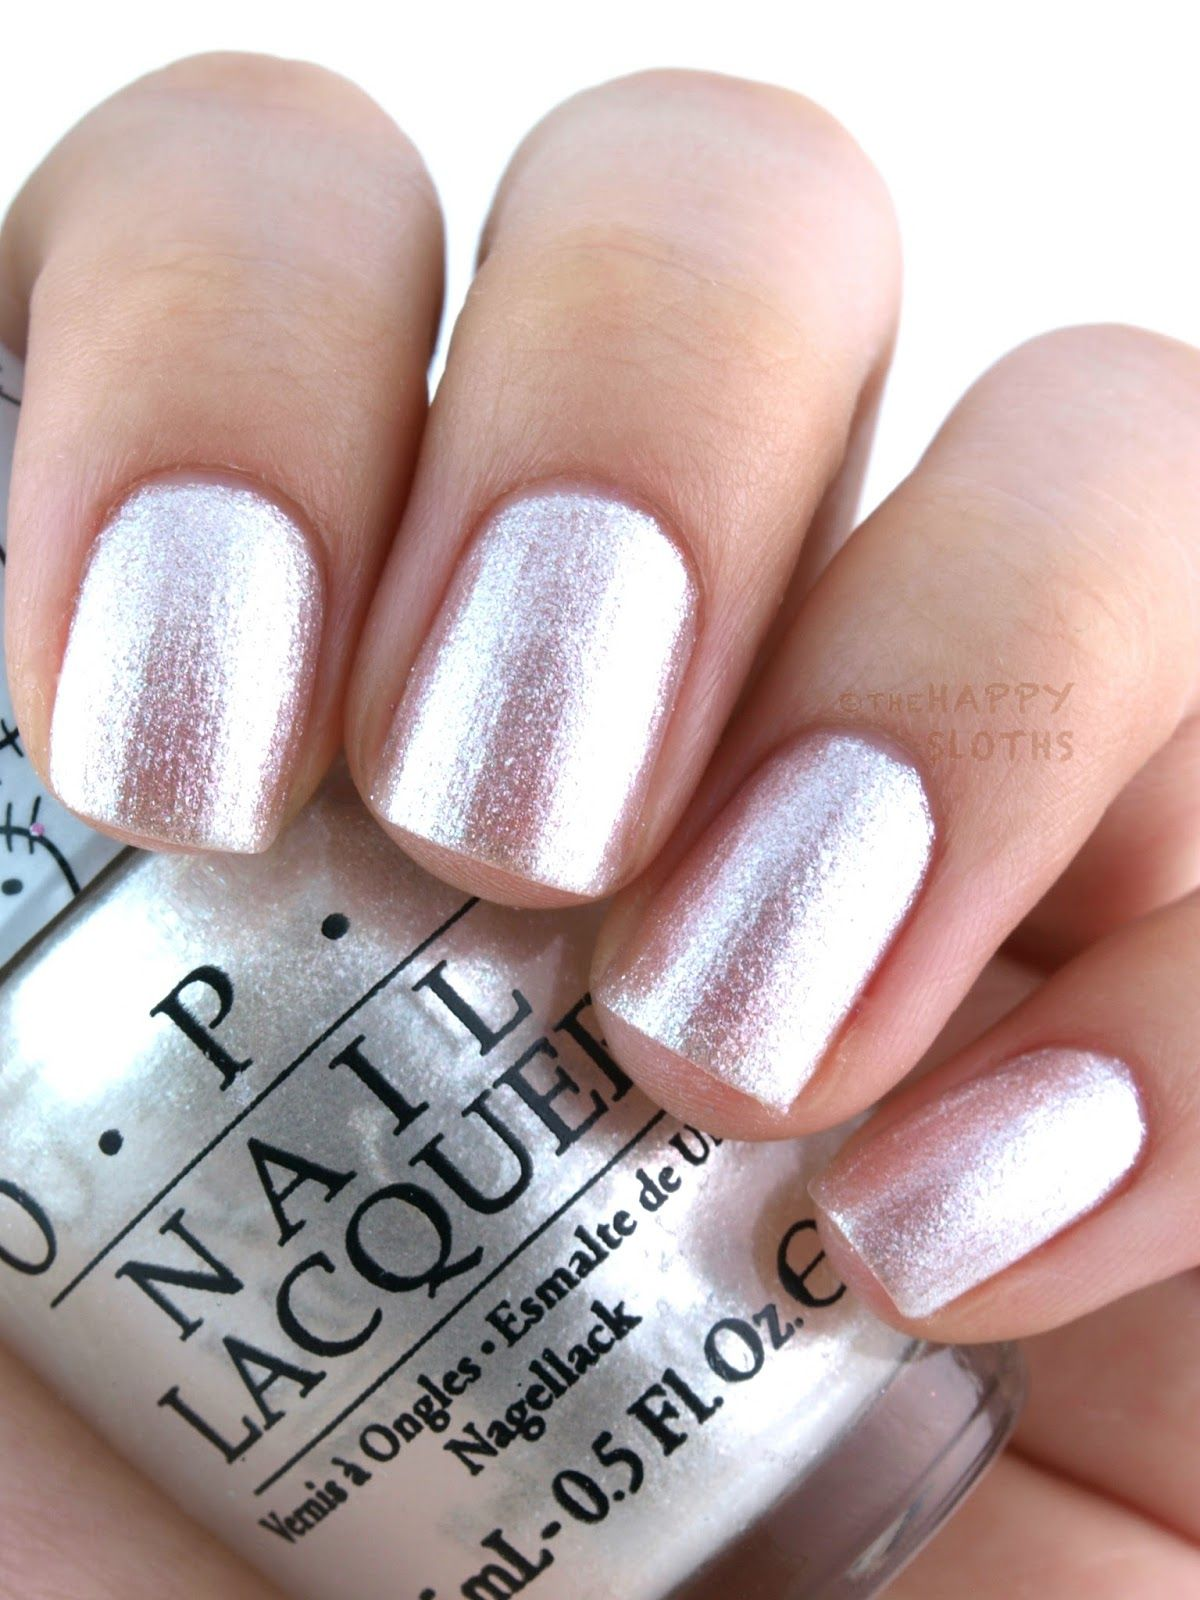 OPI Hello Kitty Collection: Review and Swatches   Diseños de uñas ...